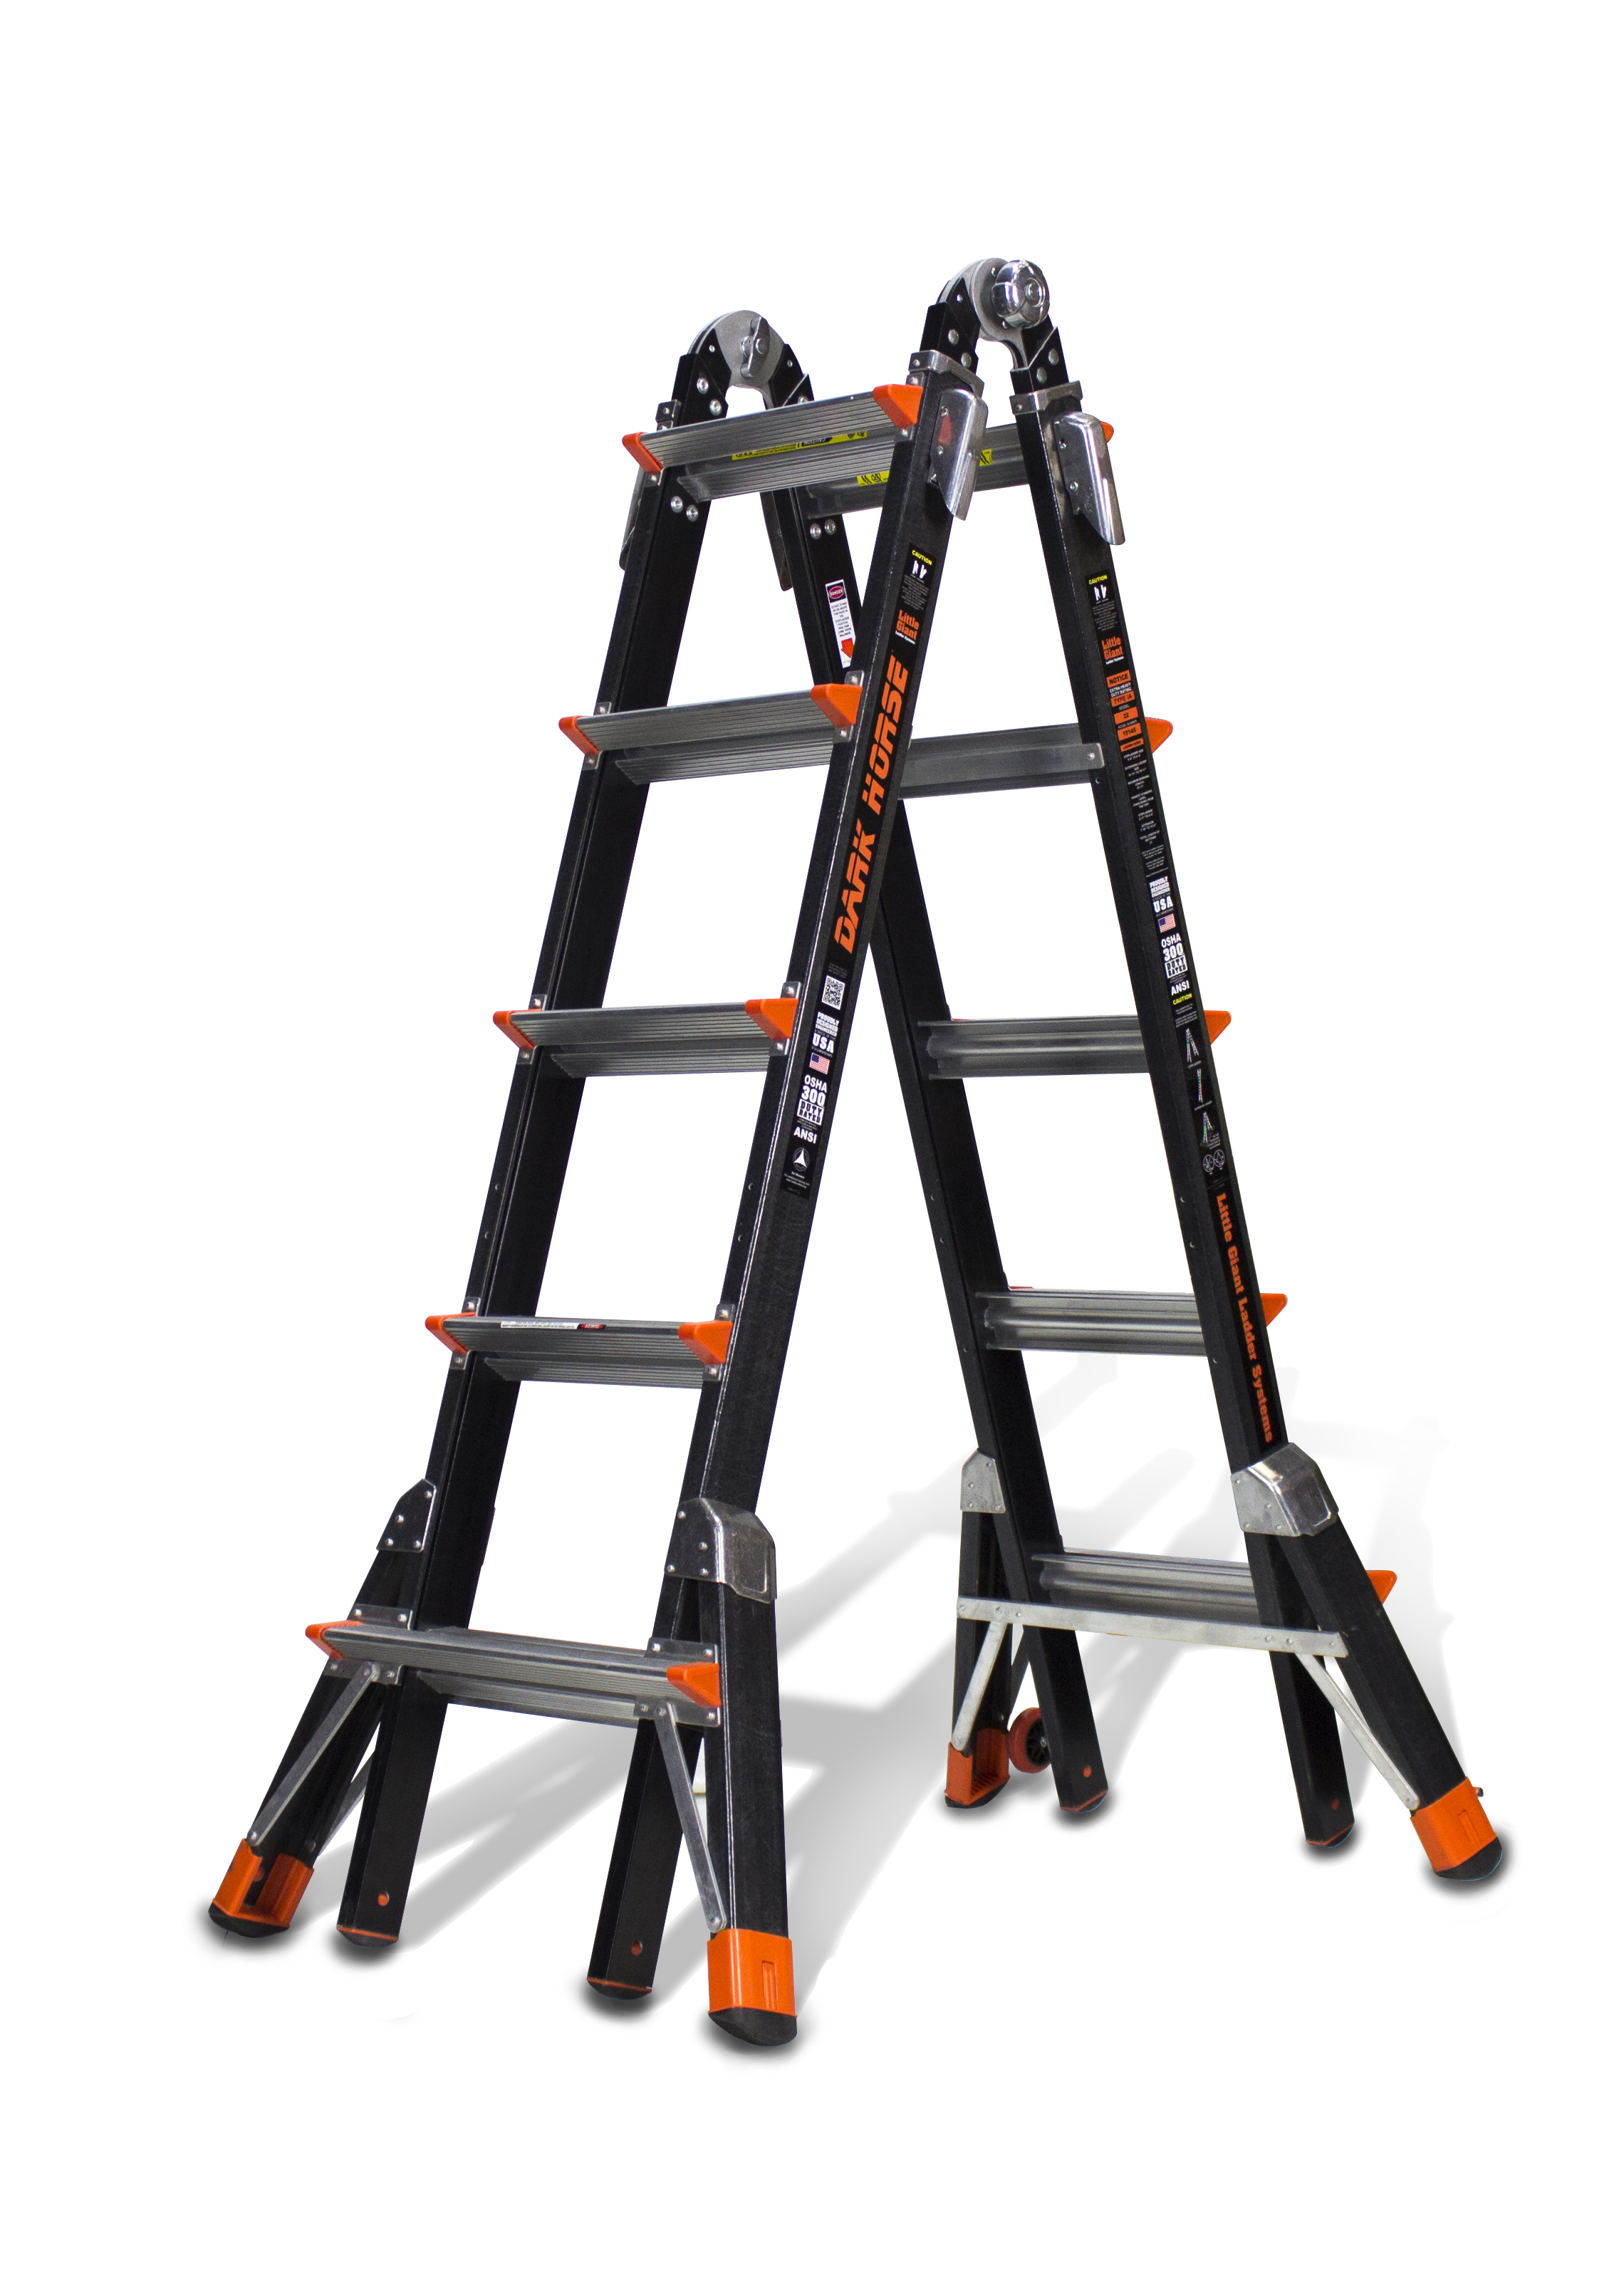 Little Giant Dark Horse, Model 22 Type IA 300 lbs rated, fiberglass articulating ladder by Wing Enterprises, Inc.